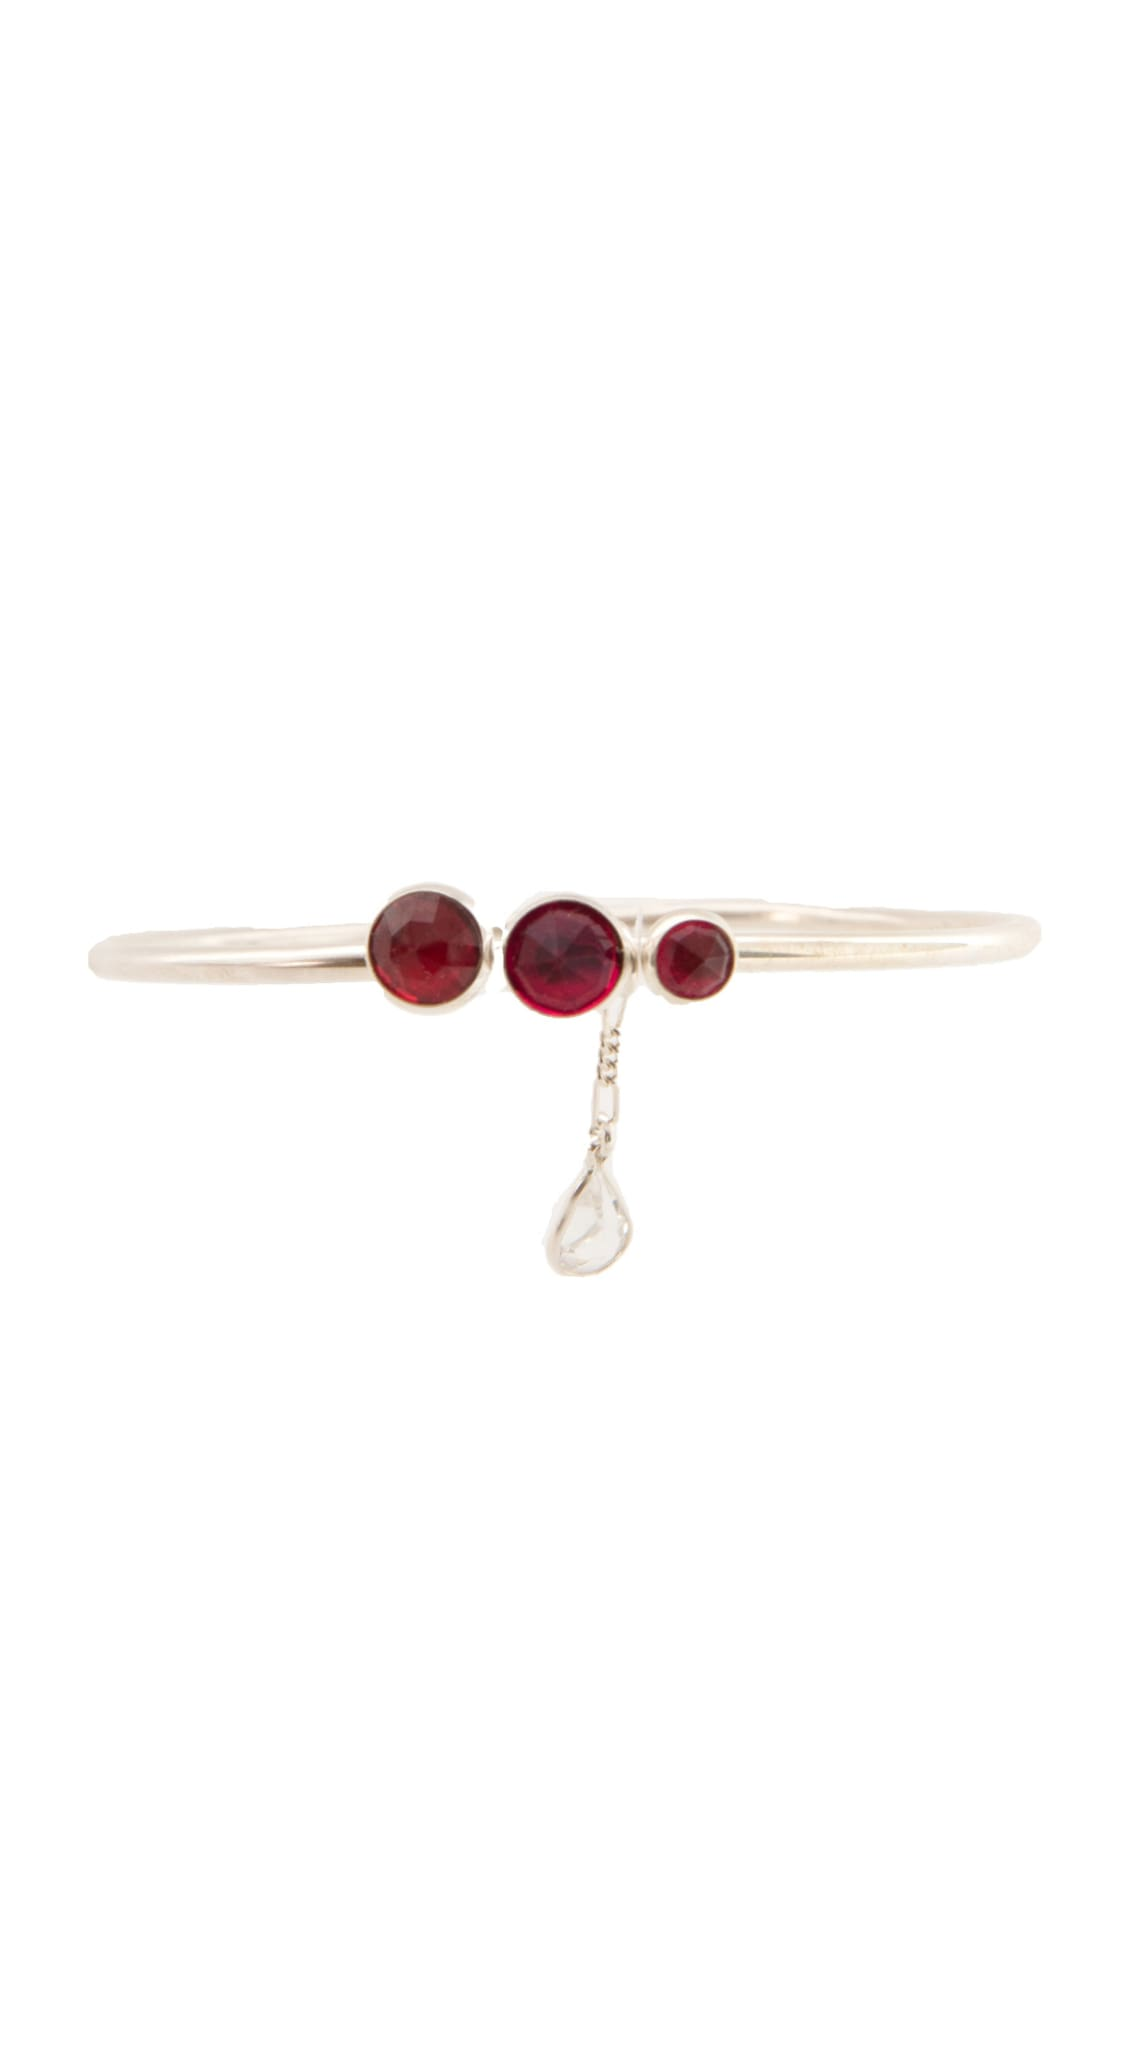 Sterling Silver red stone Bloody Wrist Bangle by KING RELD | Nineteenth Amendment